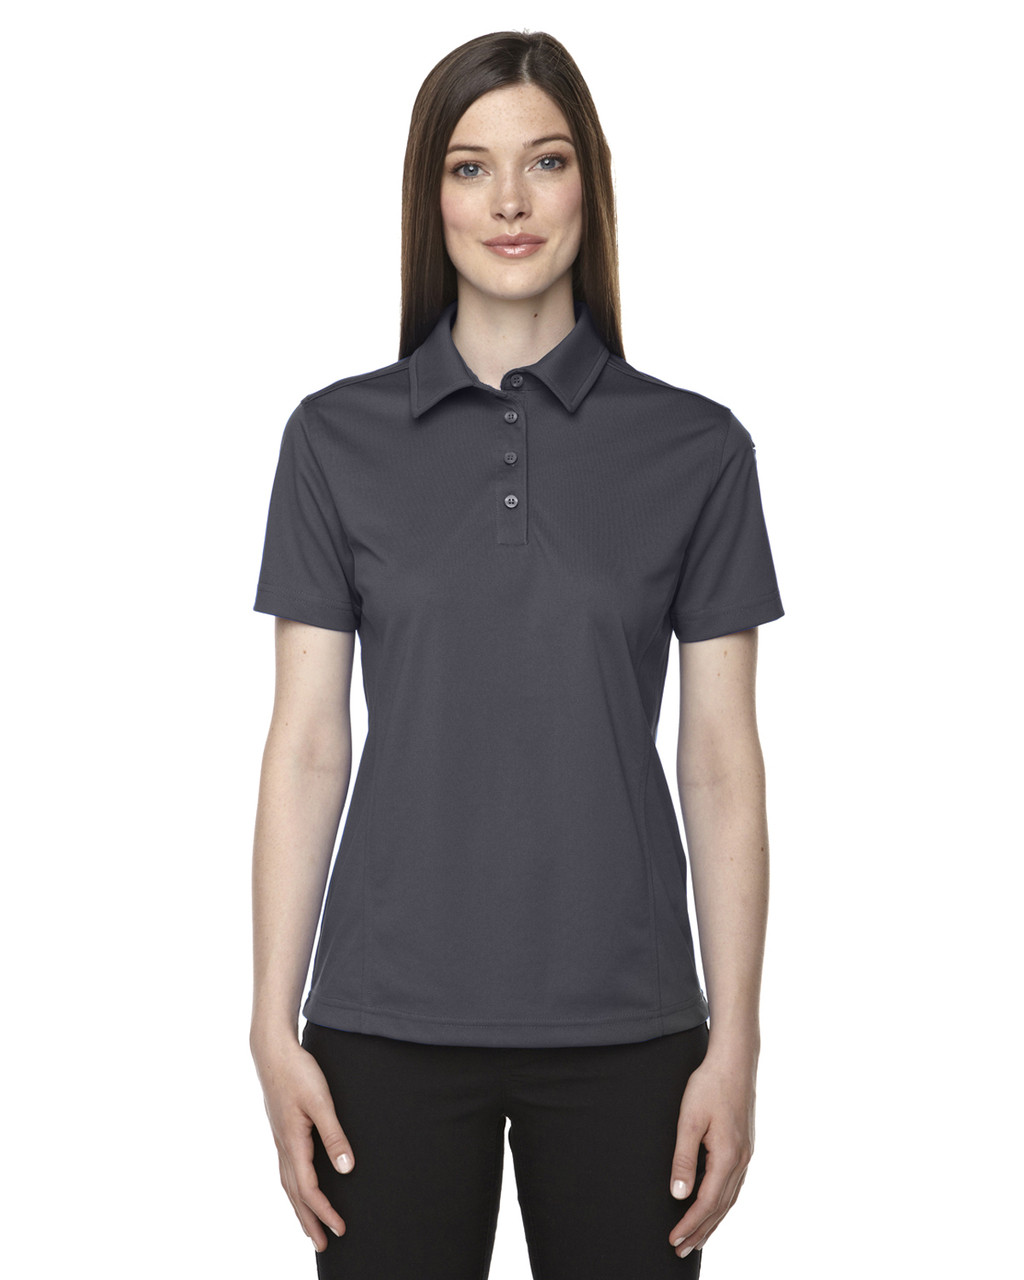 Carbon - 75114 Ash City - Extreme Eperformance Ladies Snag Protection Plus Polo Shirt